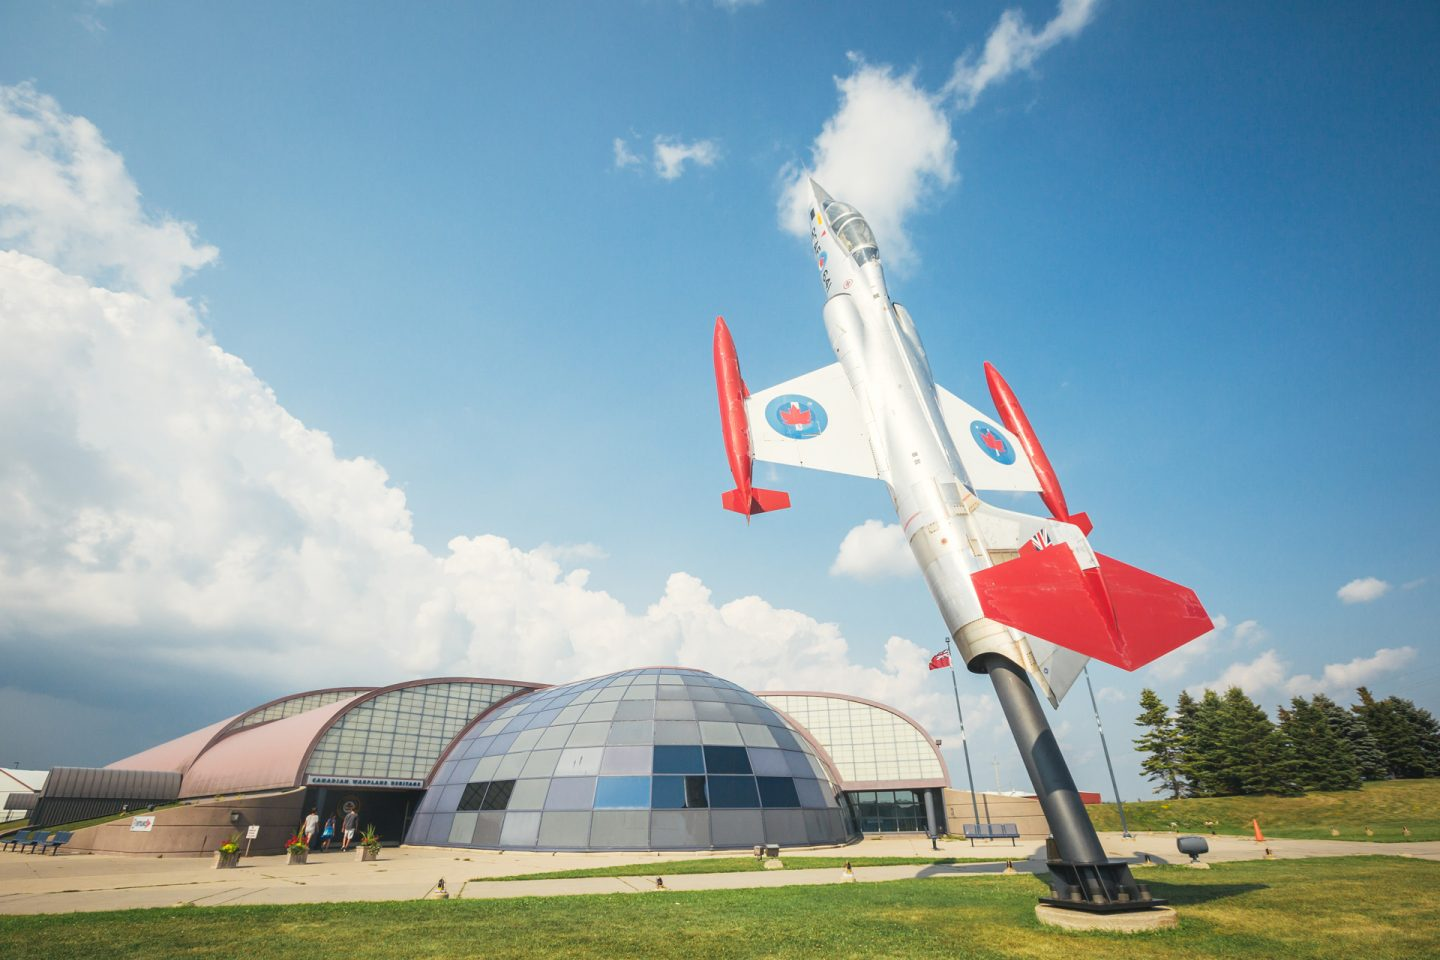 Canadian Warplane Museum – Save up to $8 off regular admission